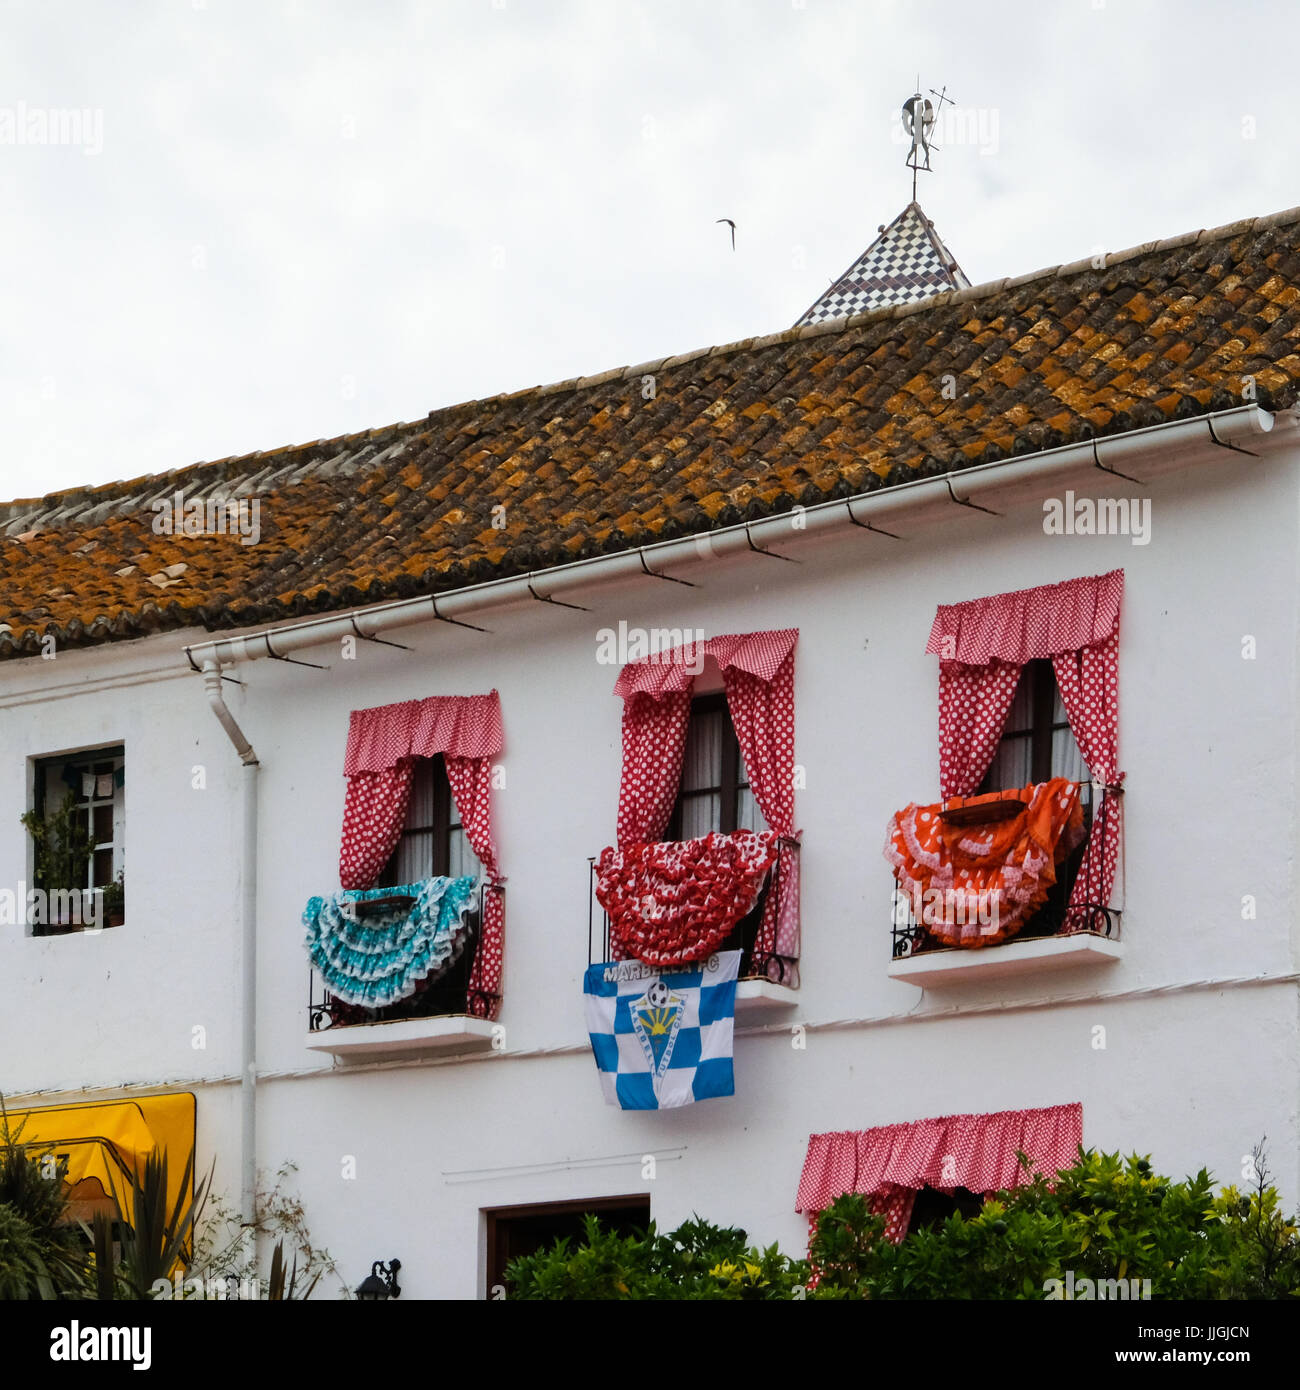 Traditional Spanish Dresses adorning Balconies on a Building in Marbella - Stock Image